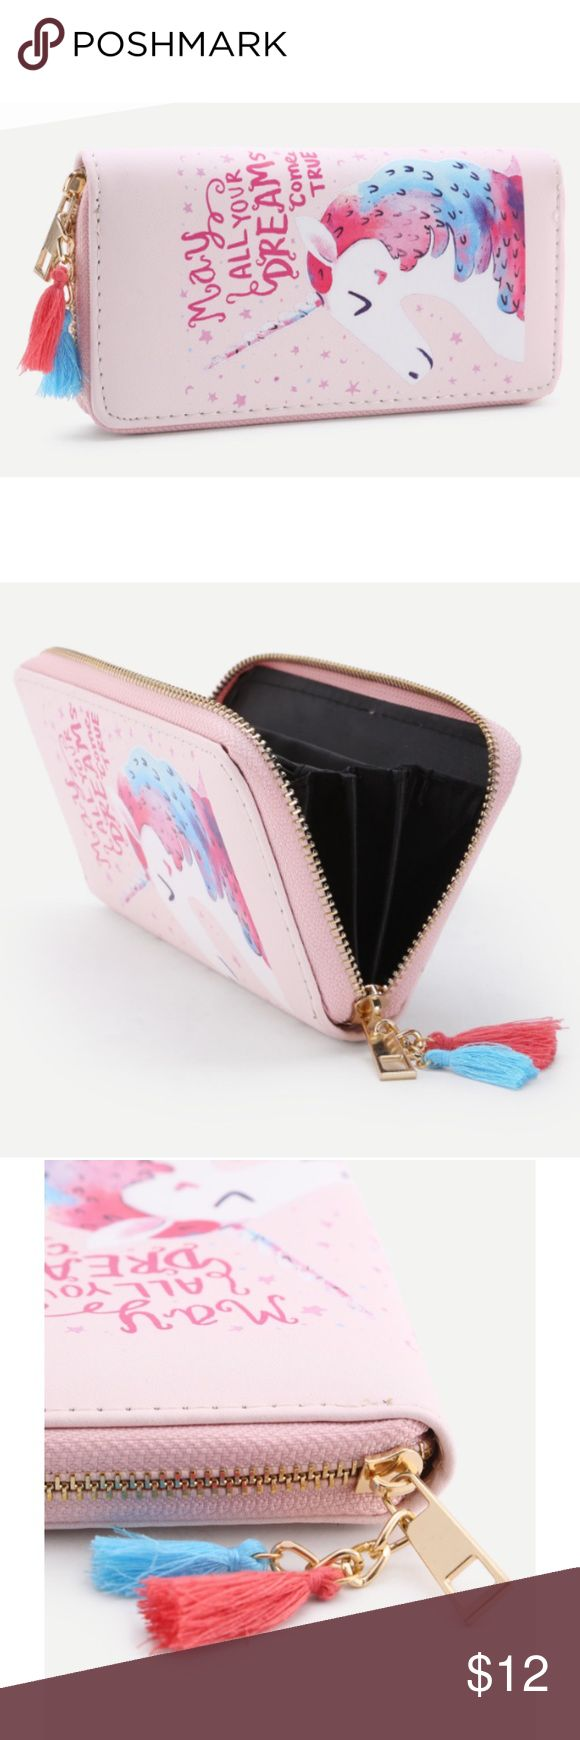 "Unicorn oversized wallet Adorableeee oversized wallet with unicorn design and ""may all your dreams come true"" text... multiple pockets for all your stuff, zipper closure and stringy pompom detailing. Let this be your good luck charm good luck charm ! Bags Wallets"